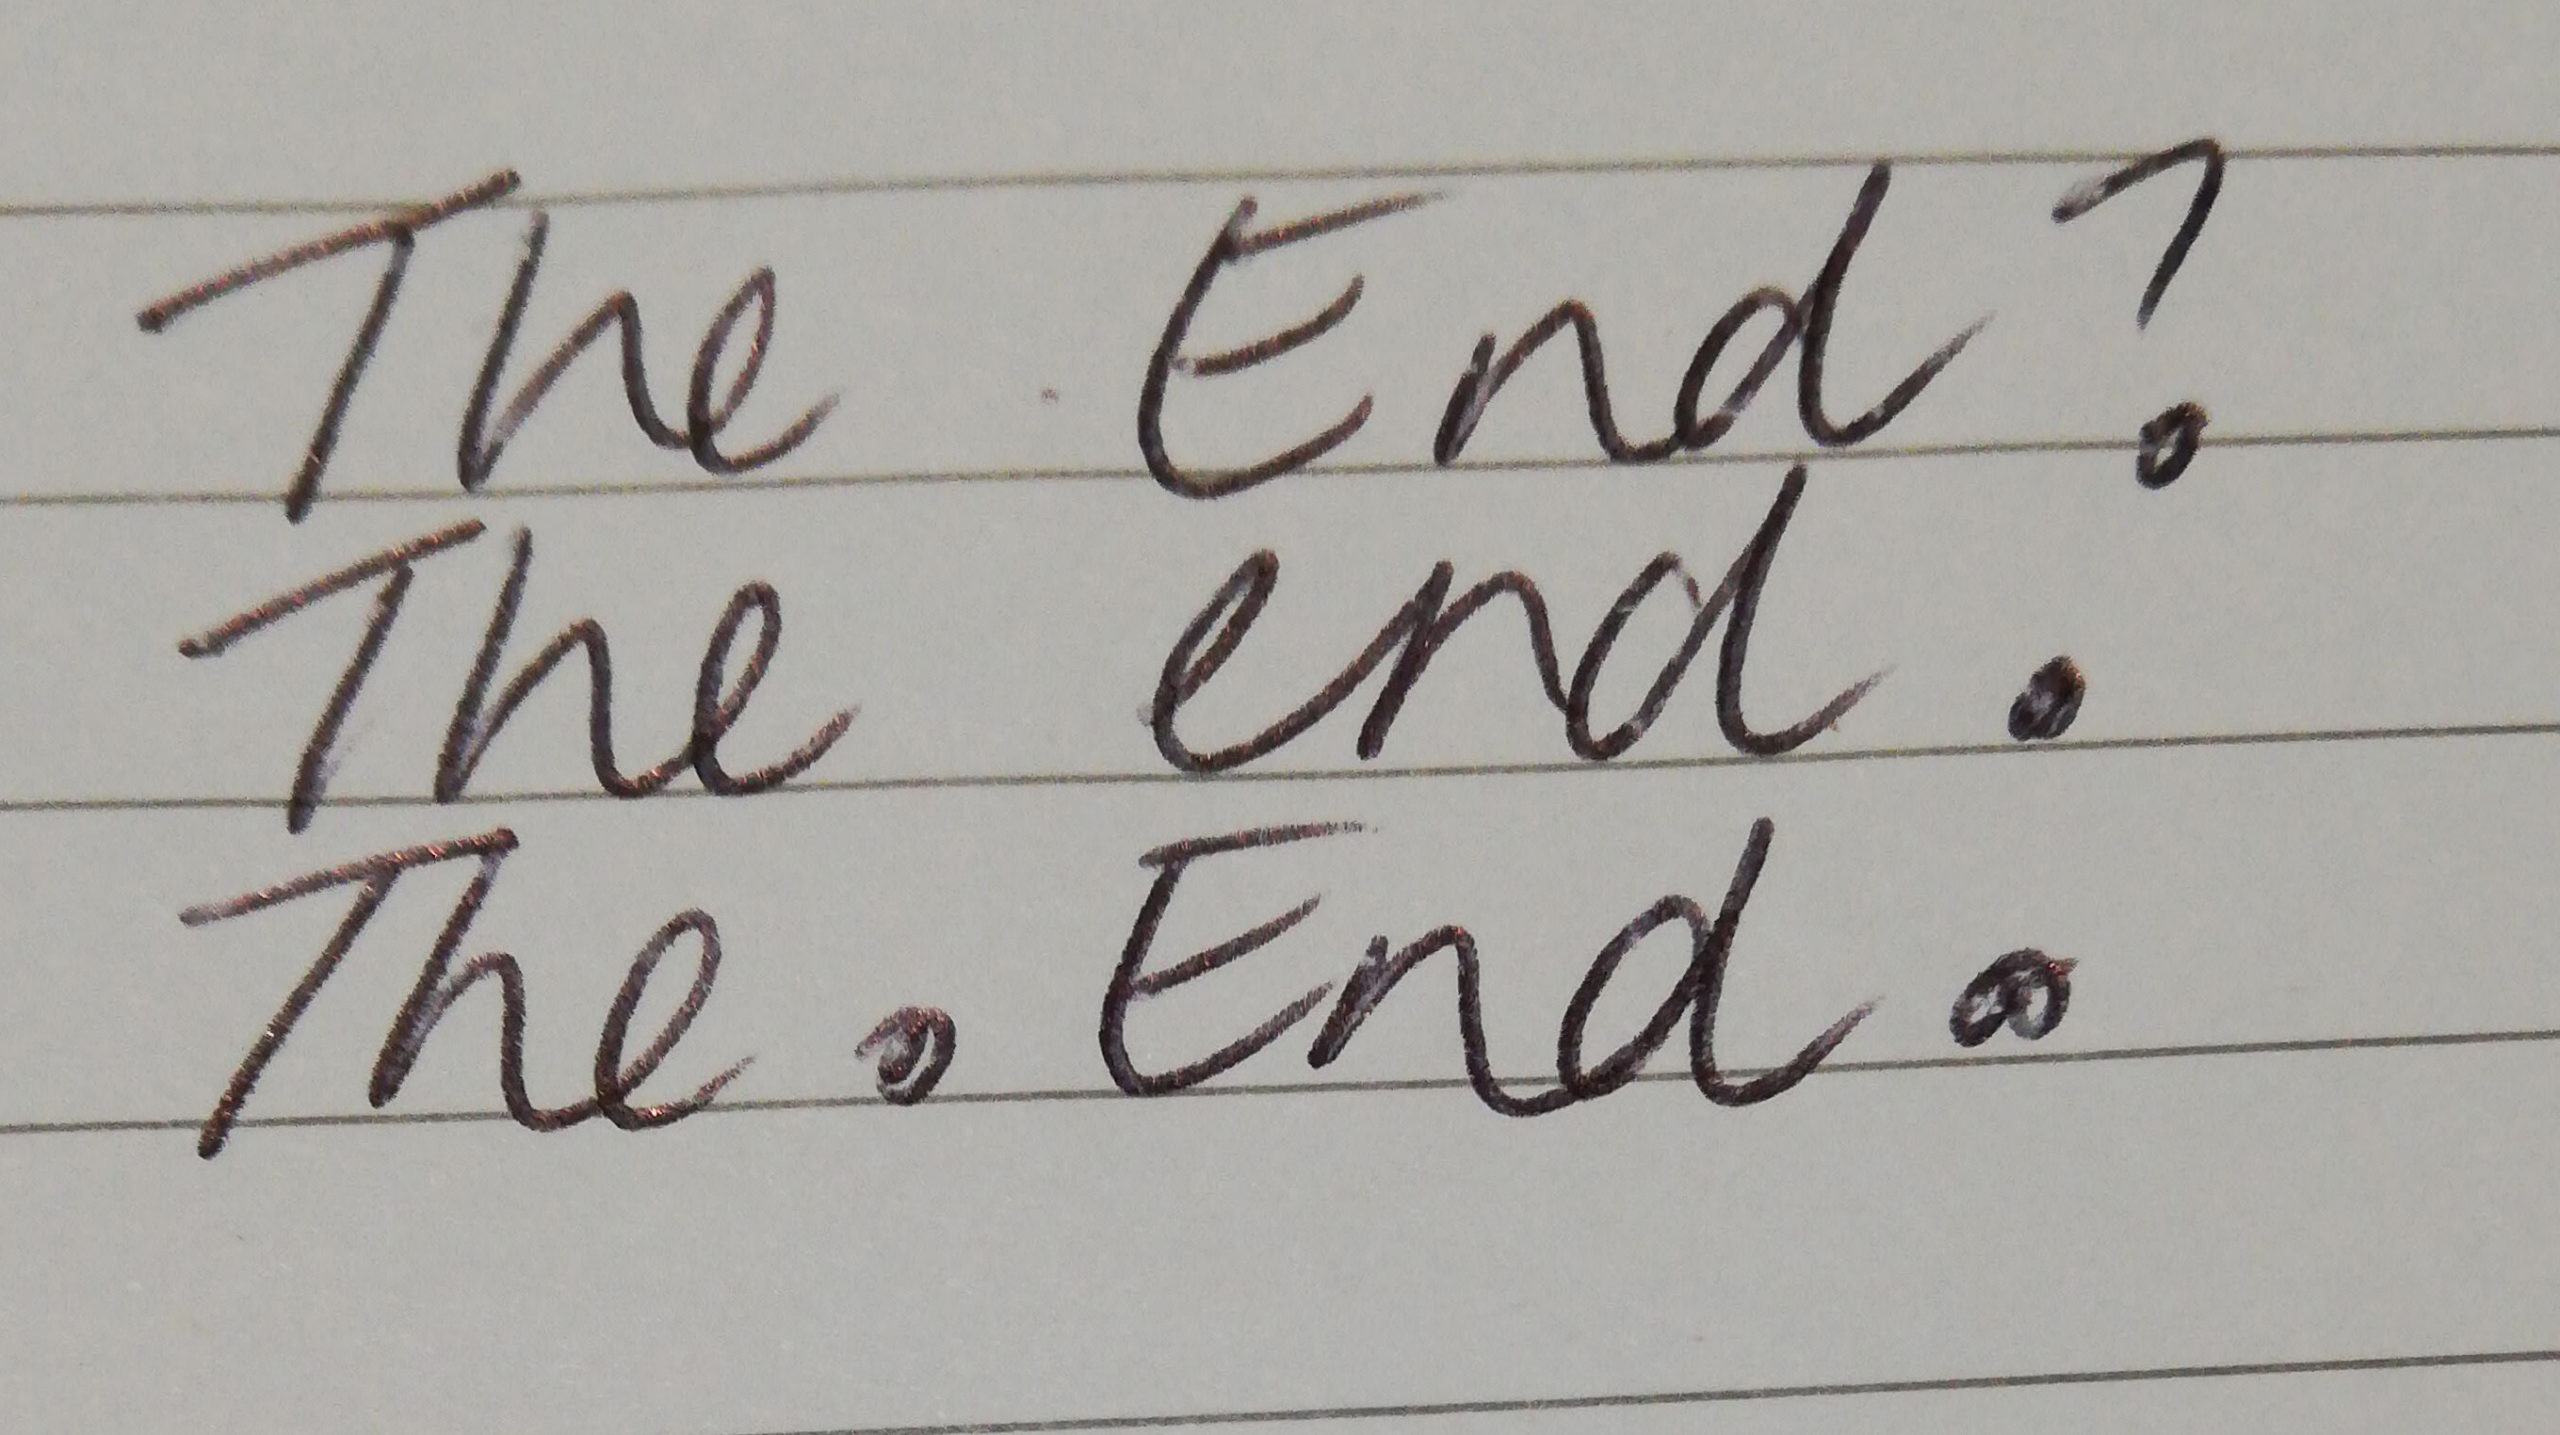 A little something about endings. The picture shows a lined page that reads; The End. The End? The. End.